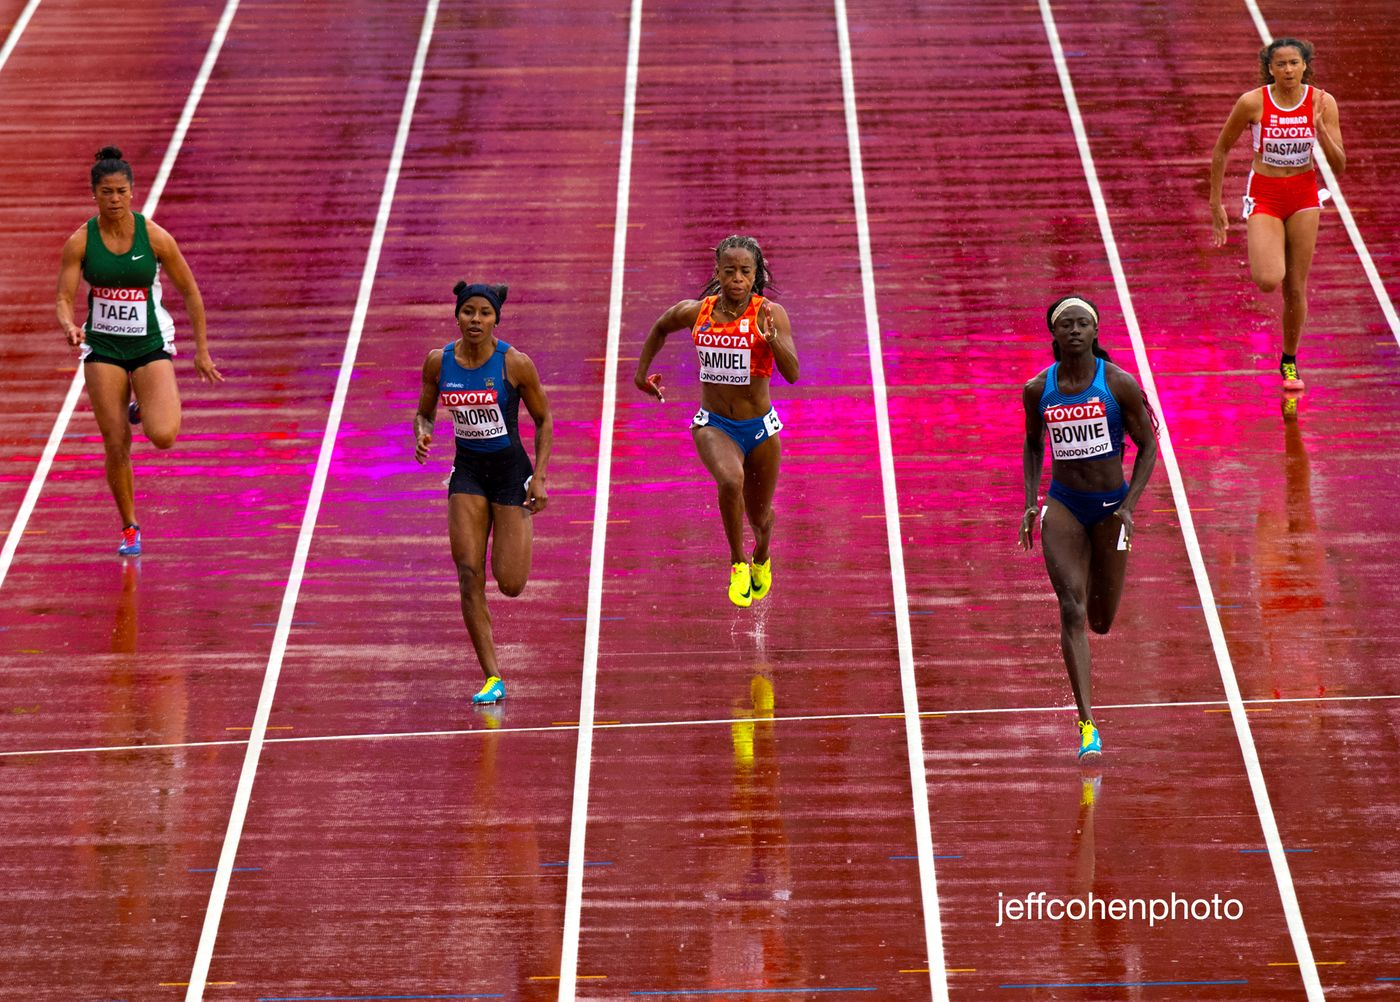 2017-IAAF-WC-London-day-2-100w-color-jeff-cohen-photo--4730-web.jpg